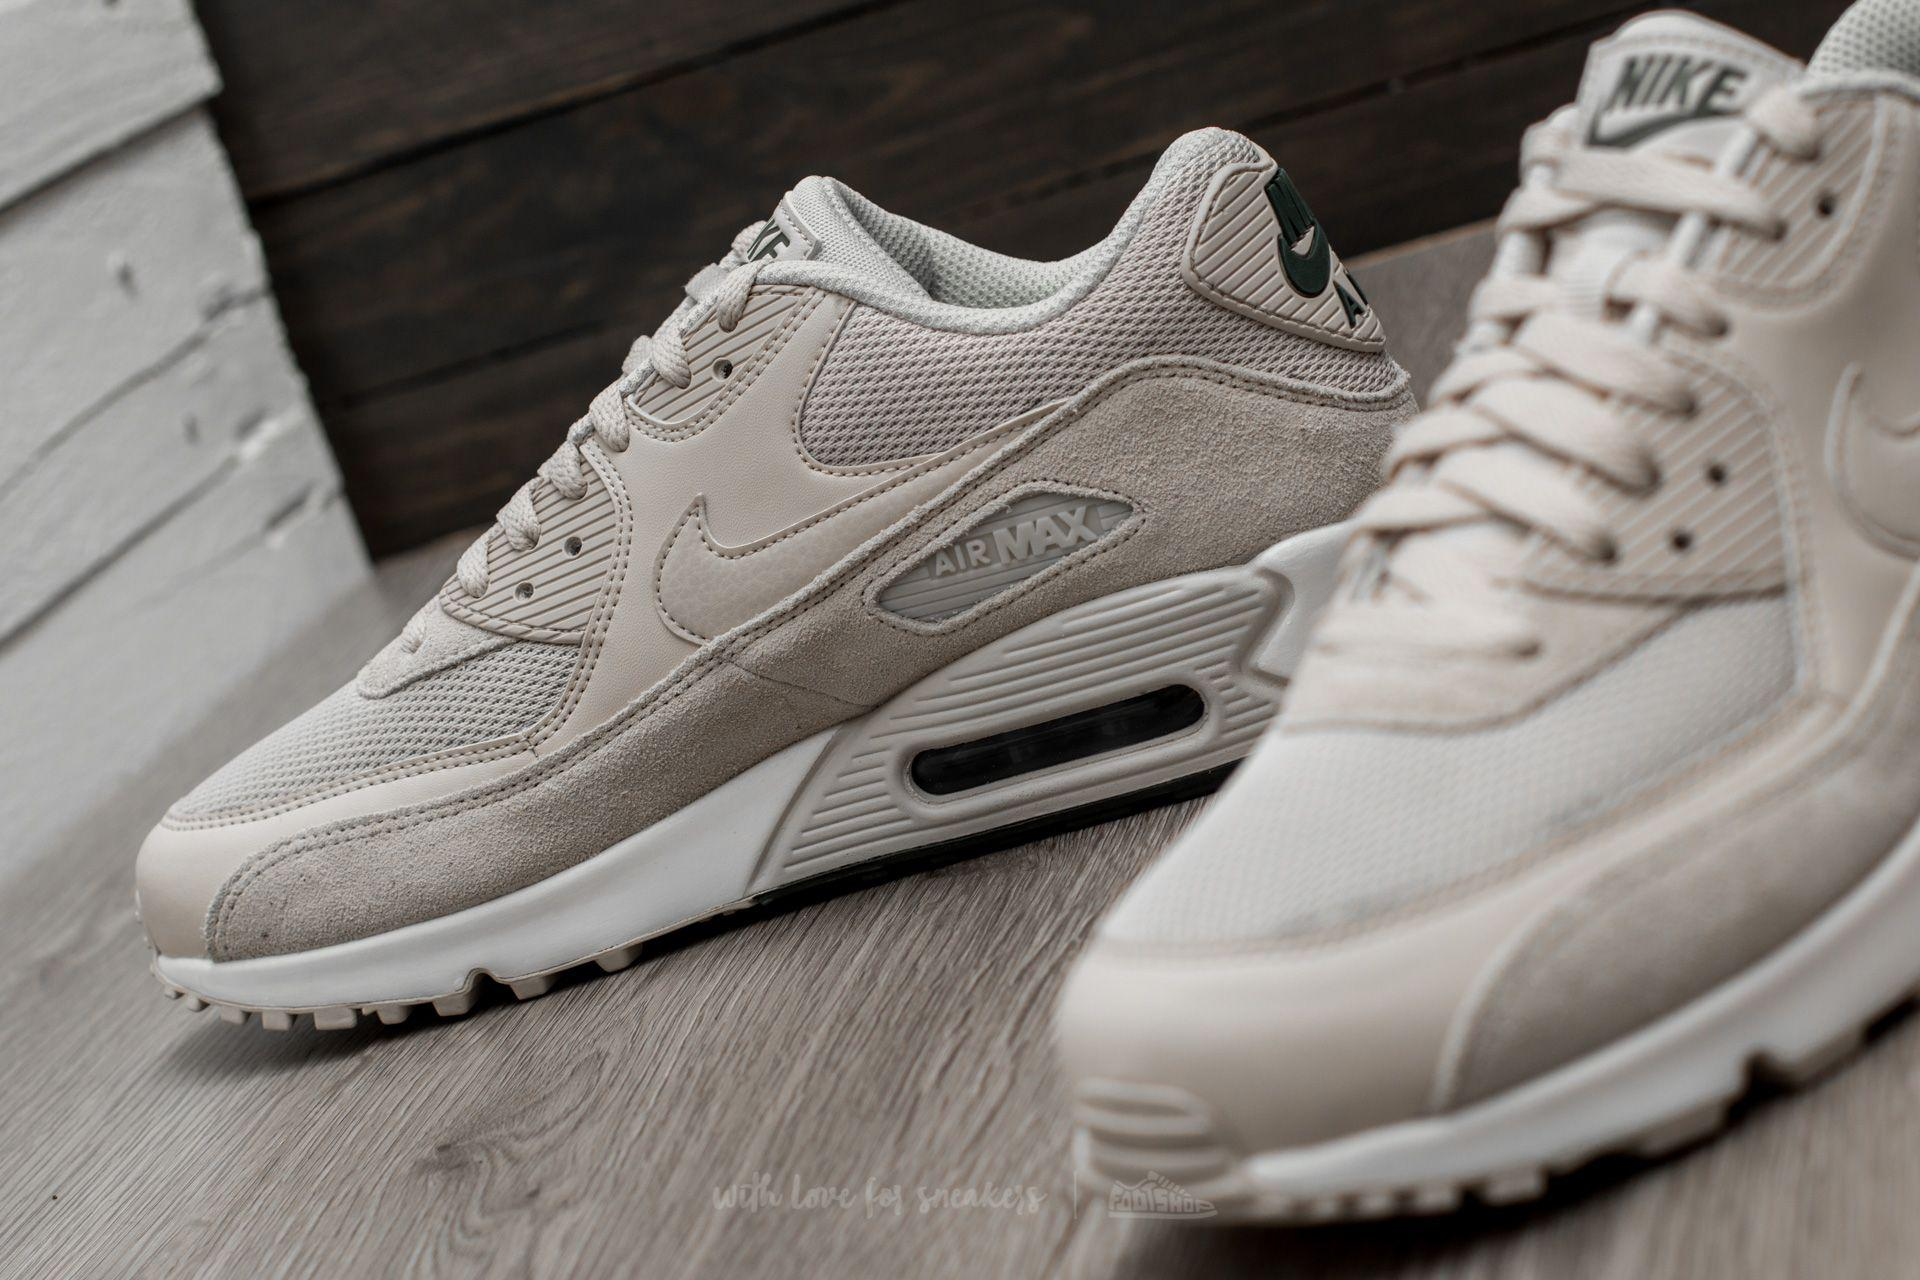 ... get gallery. previously sold at footshop mens air max 90 sneakers cafc7  74ef8 9c4ecb874